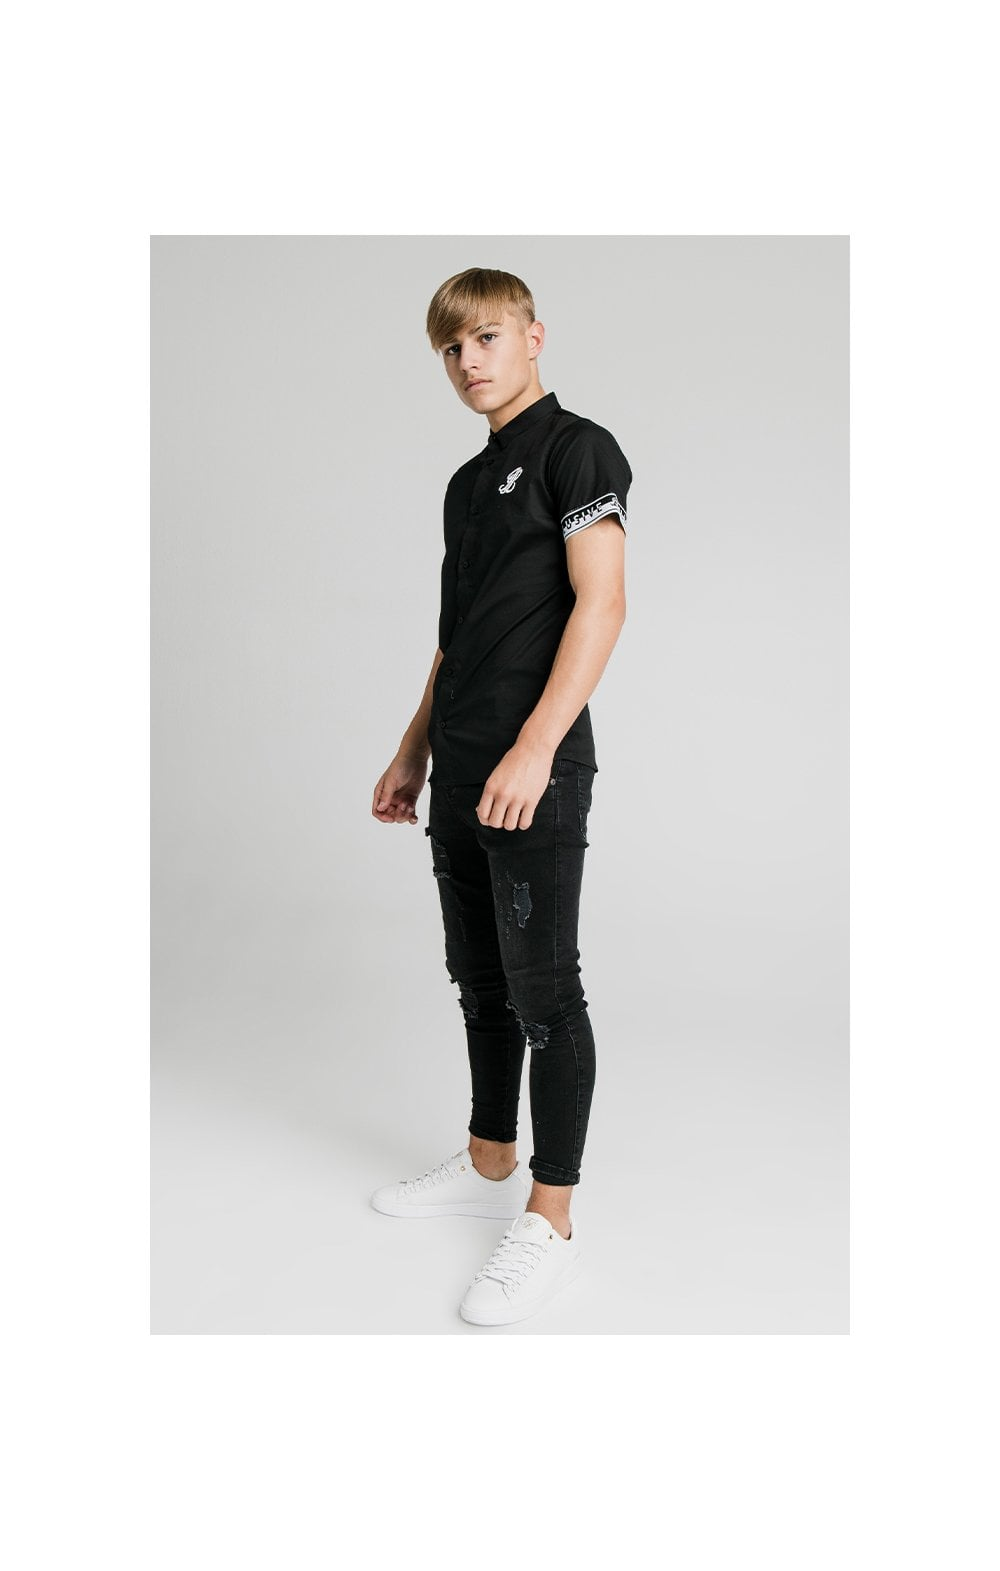 Illusive London Contrast Tape S/S Shirt - Black (3)